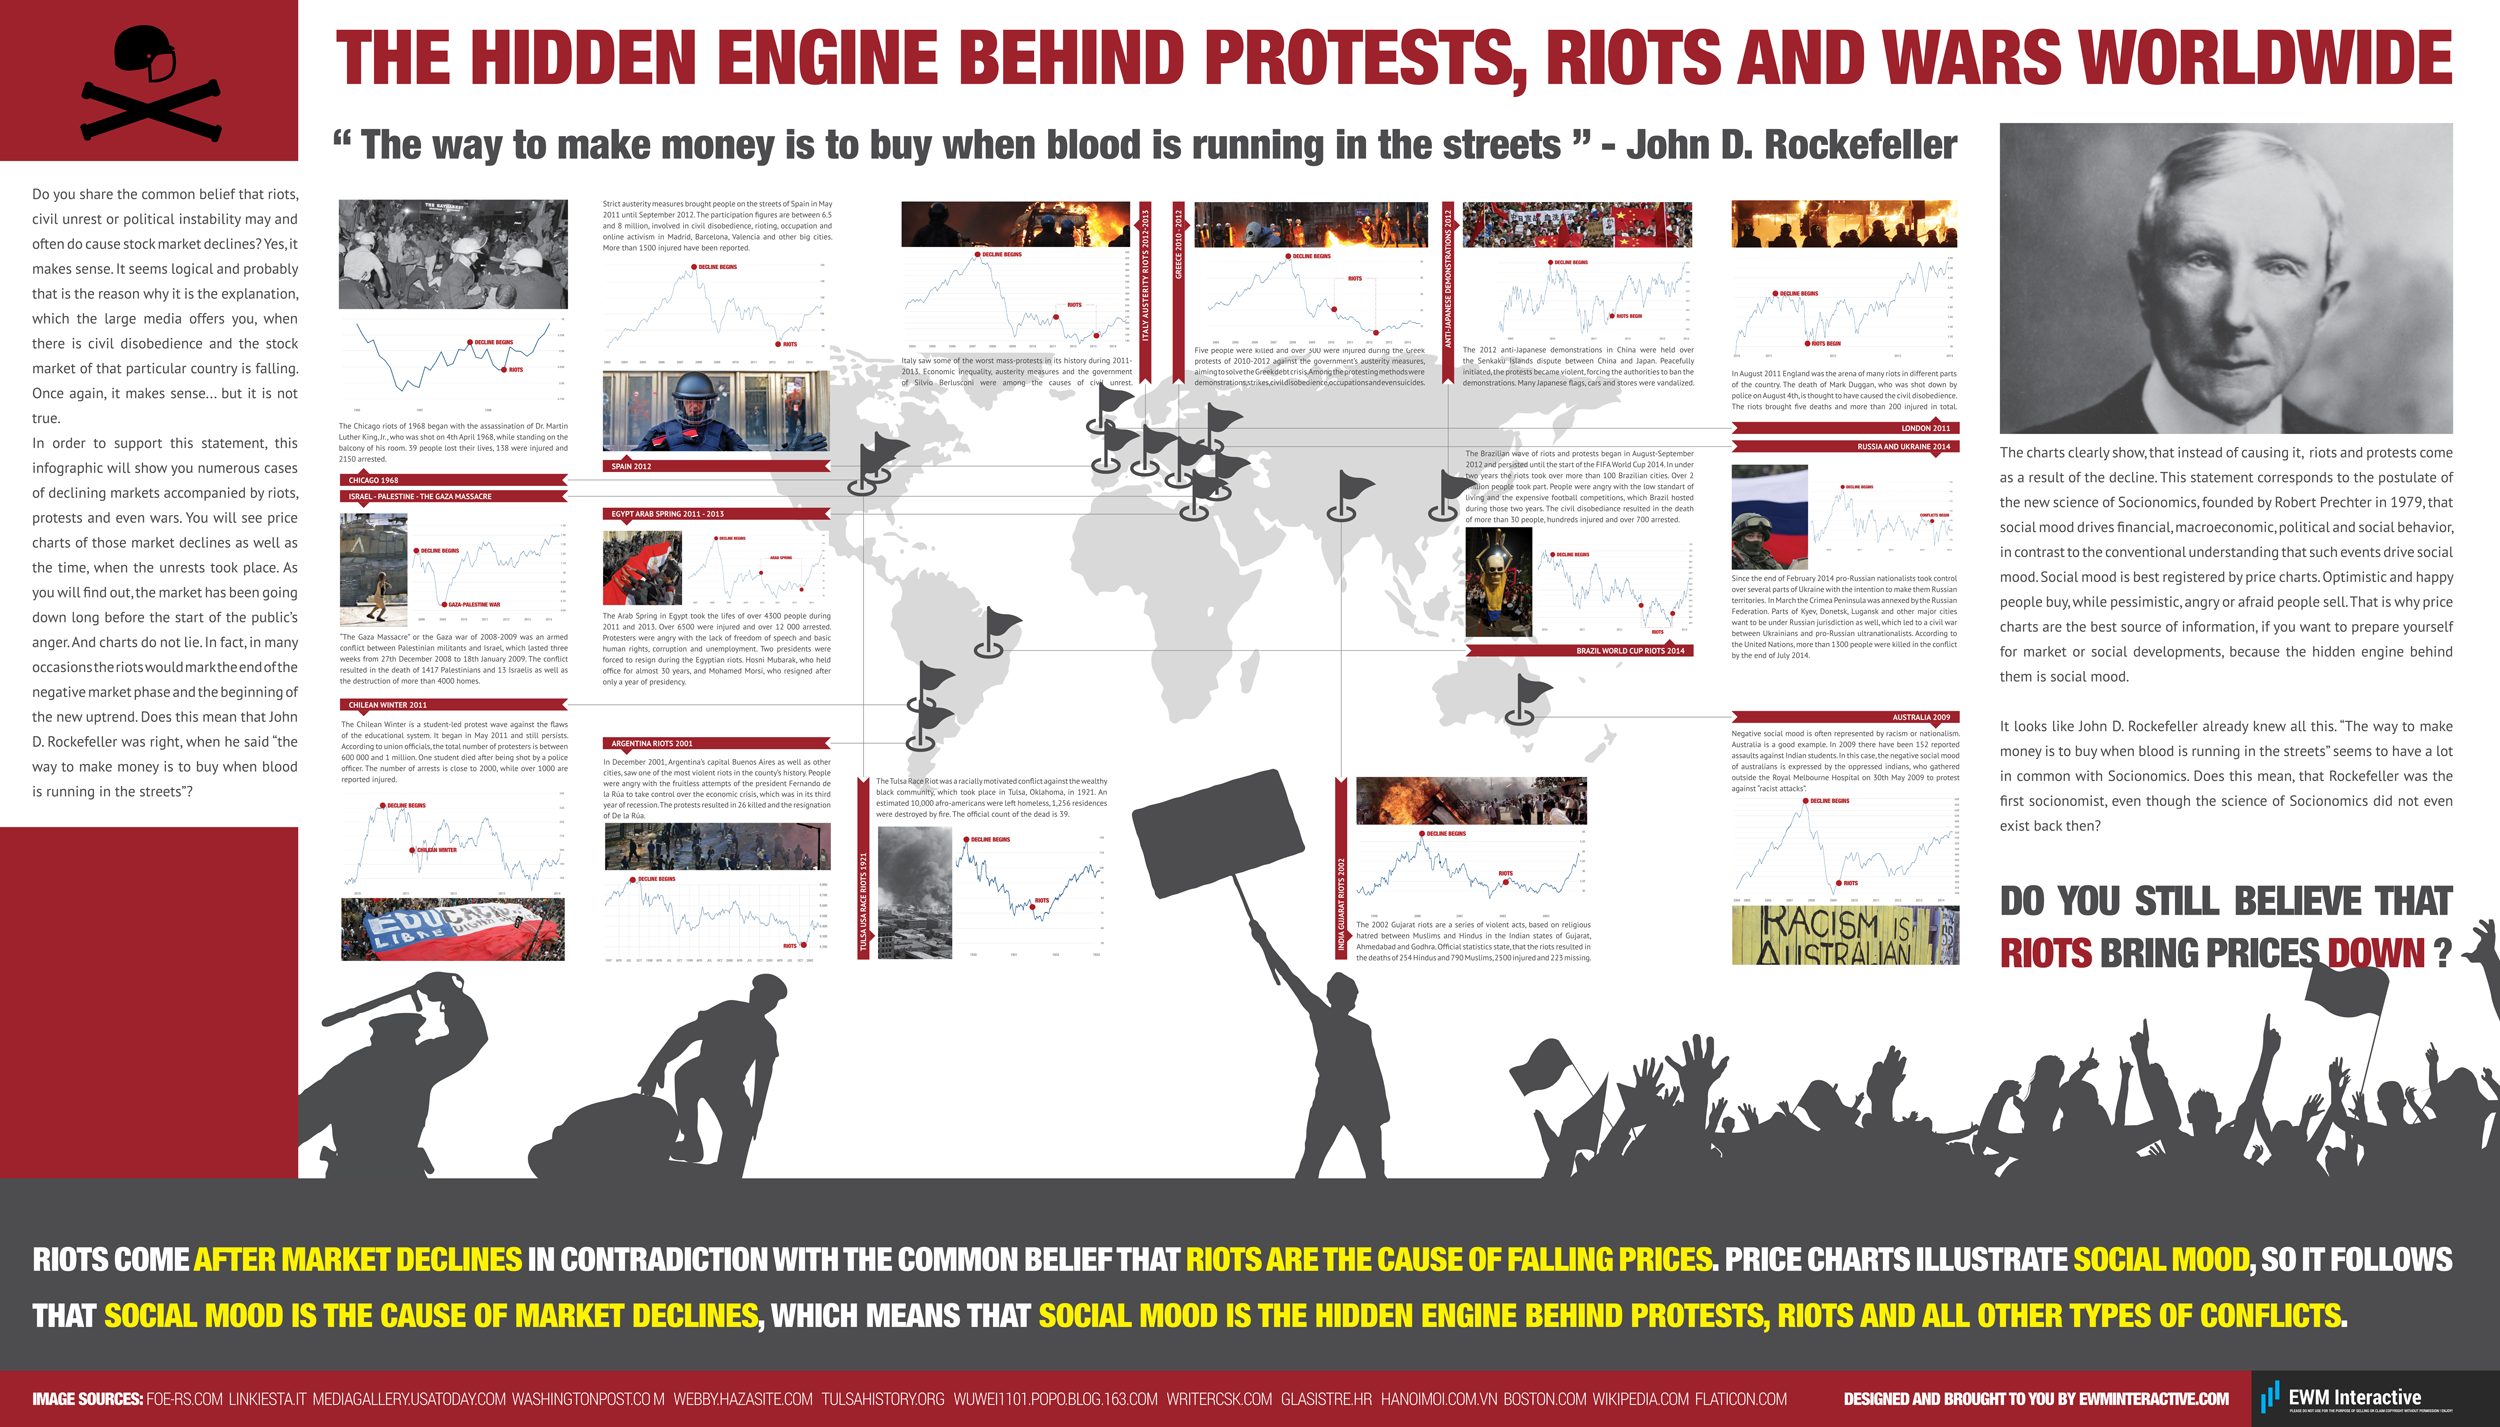 The hidden engine behind riots, protests and wars worldwide